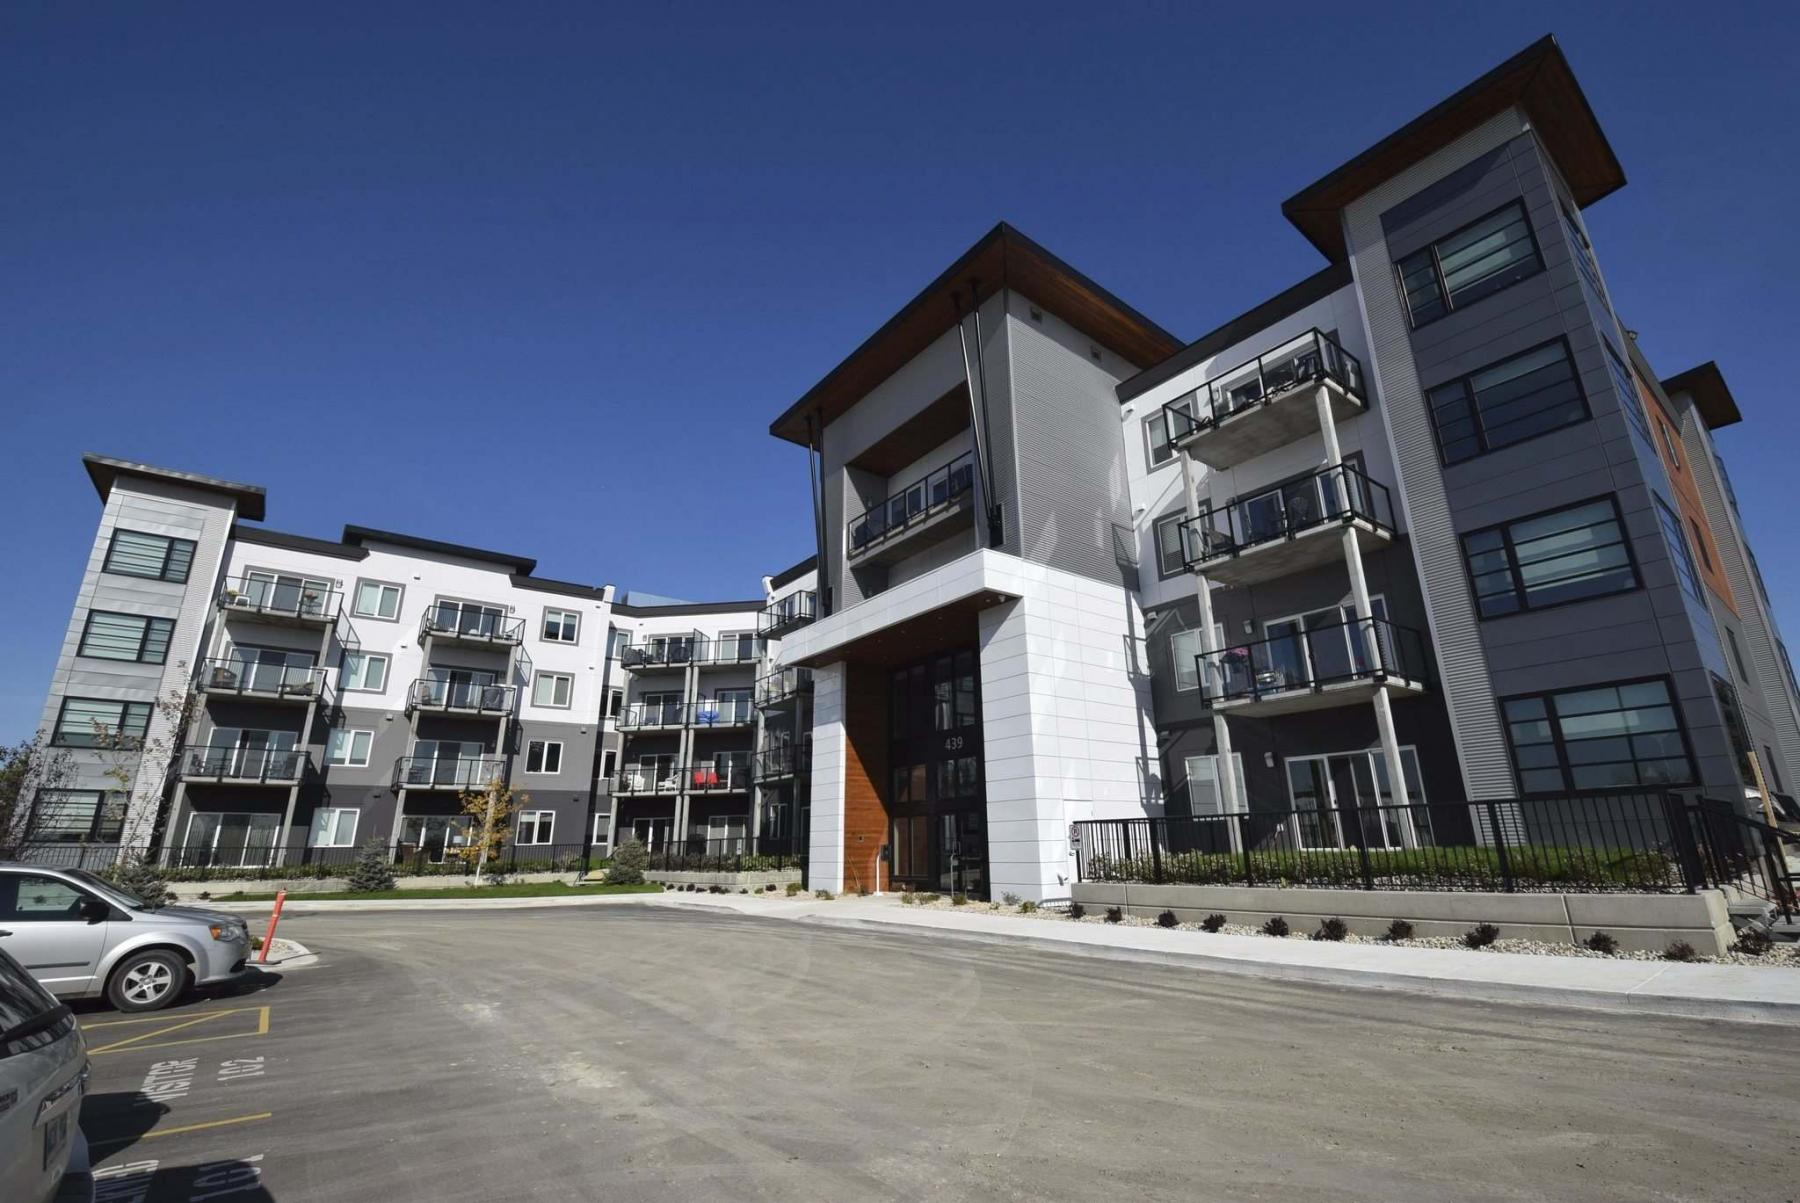 <p>PHOTOS BY TODD LEWYS / WINNIPEG FREE PRESS</p><p>The second phase of the three-phase apartment community is already 62 per cent rented and set to open in fall 2020.</p>